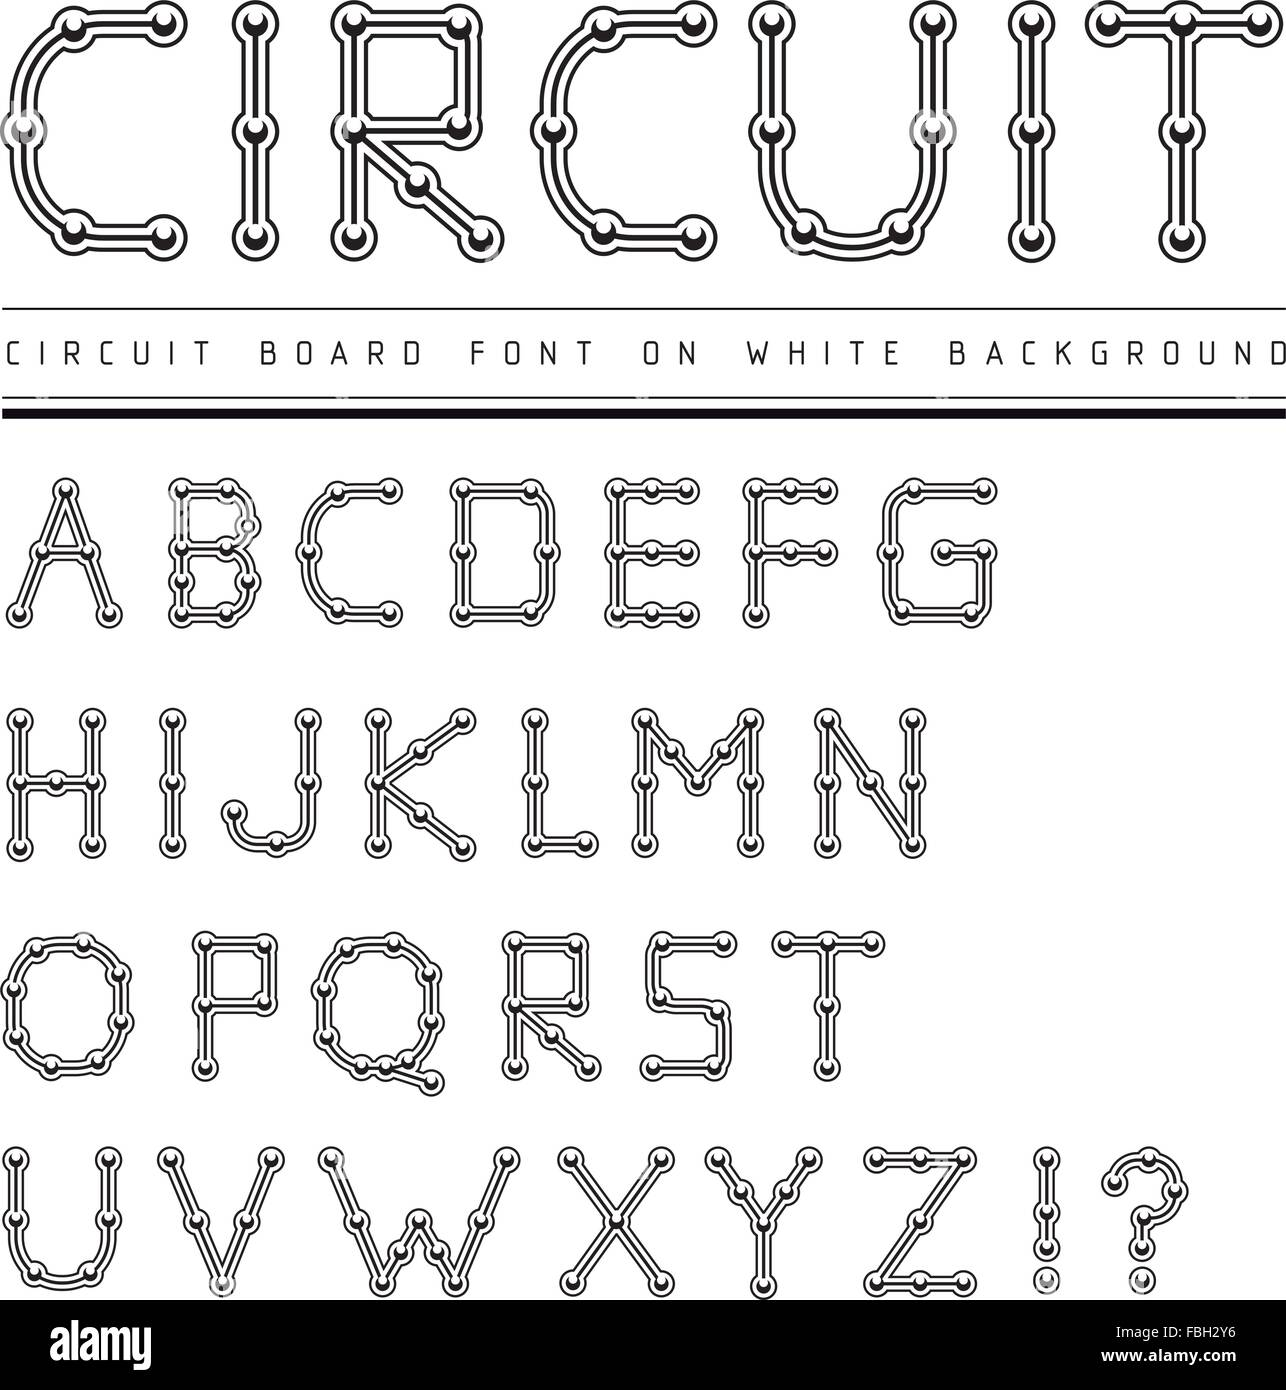 Letter From Electronic Circuit Board Alphabet On White Backgroun Stock